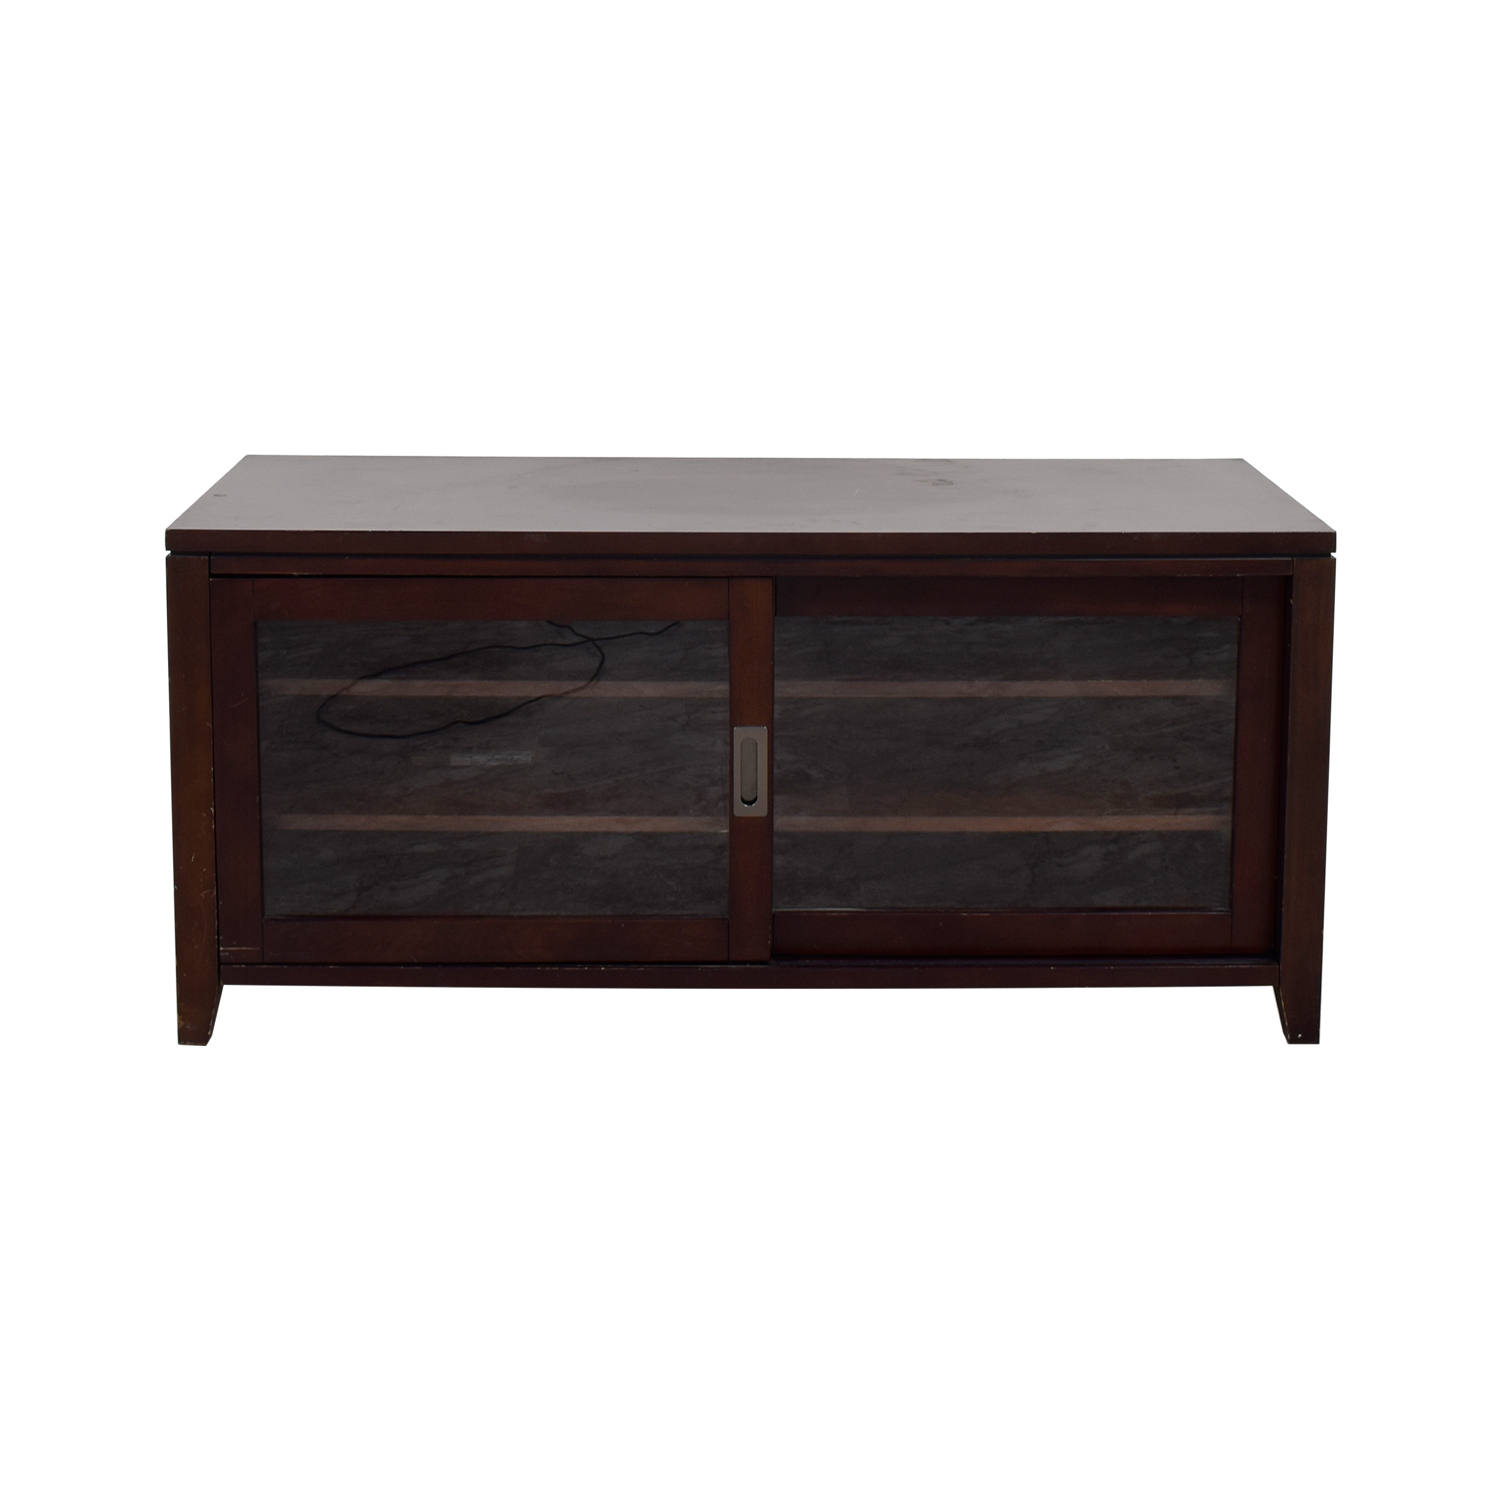 Crate & Barrel Wood and Sliding Glass Door Media Stand sale